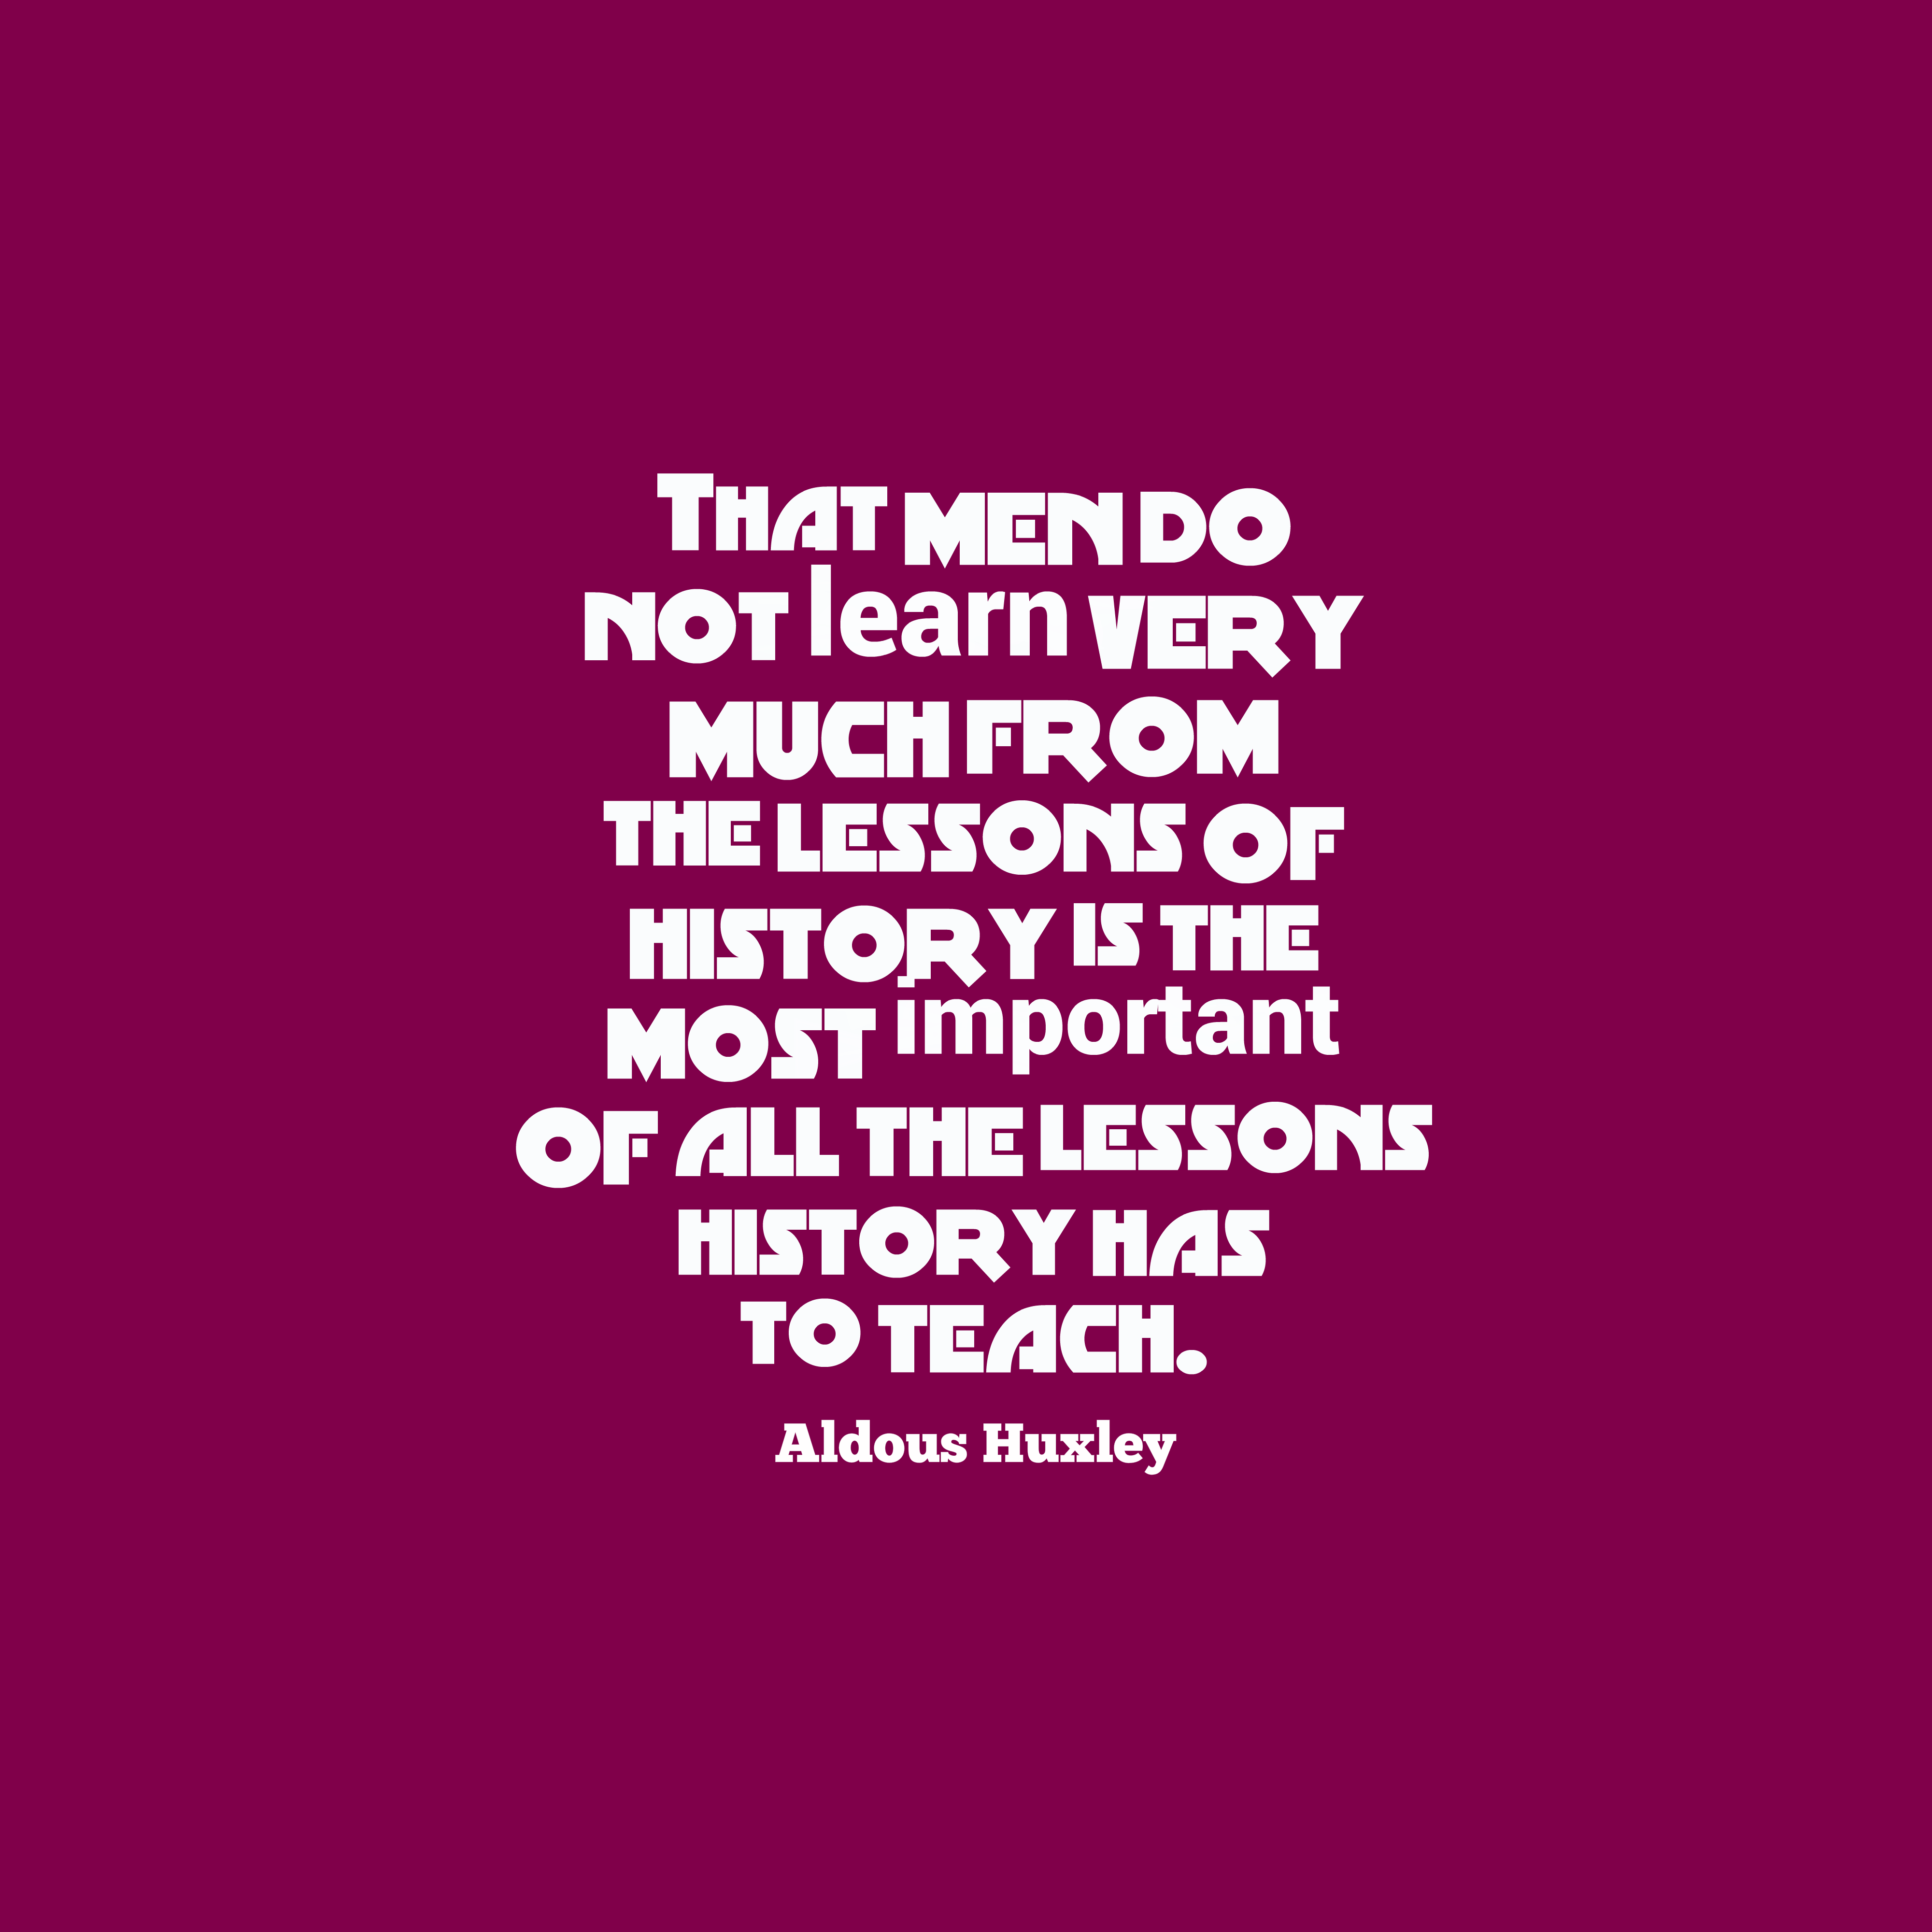 Quotes image of That men do not learn very much from the lessons of history is the most important of all the lessons history has to teach.